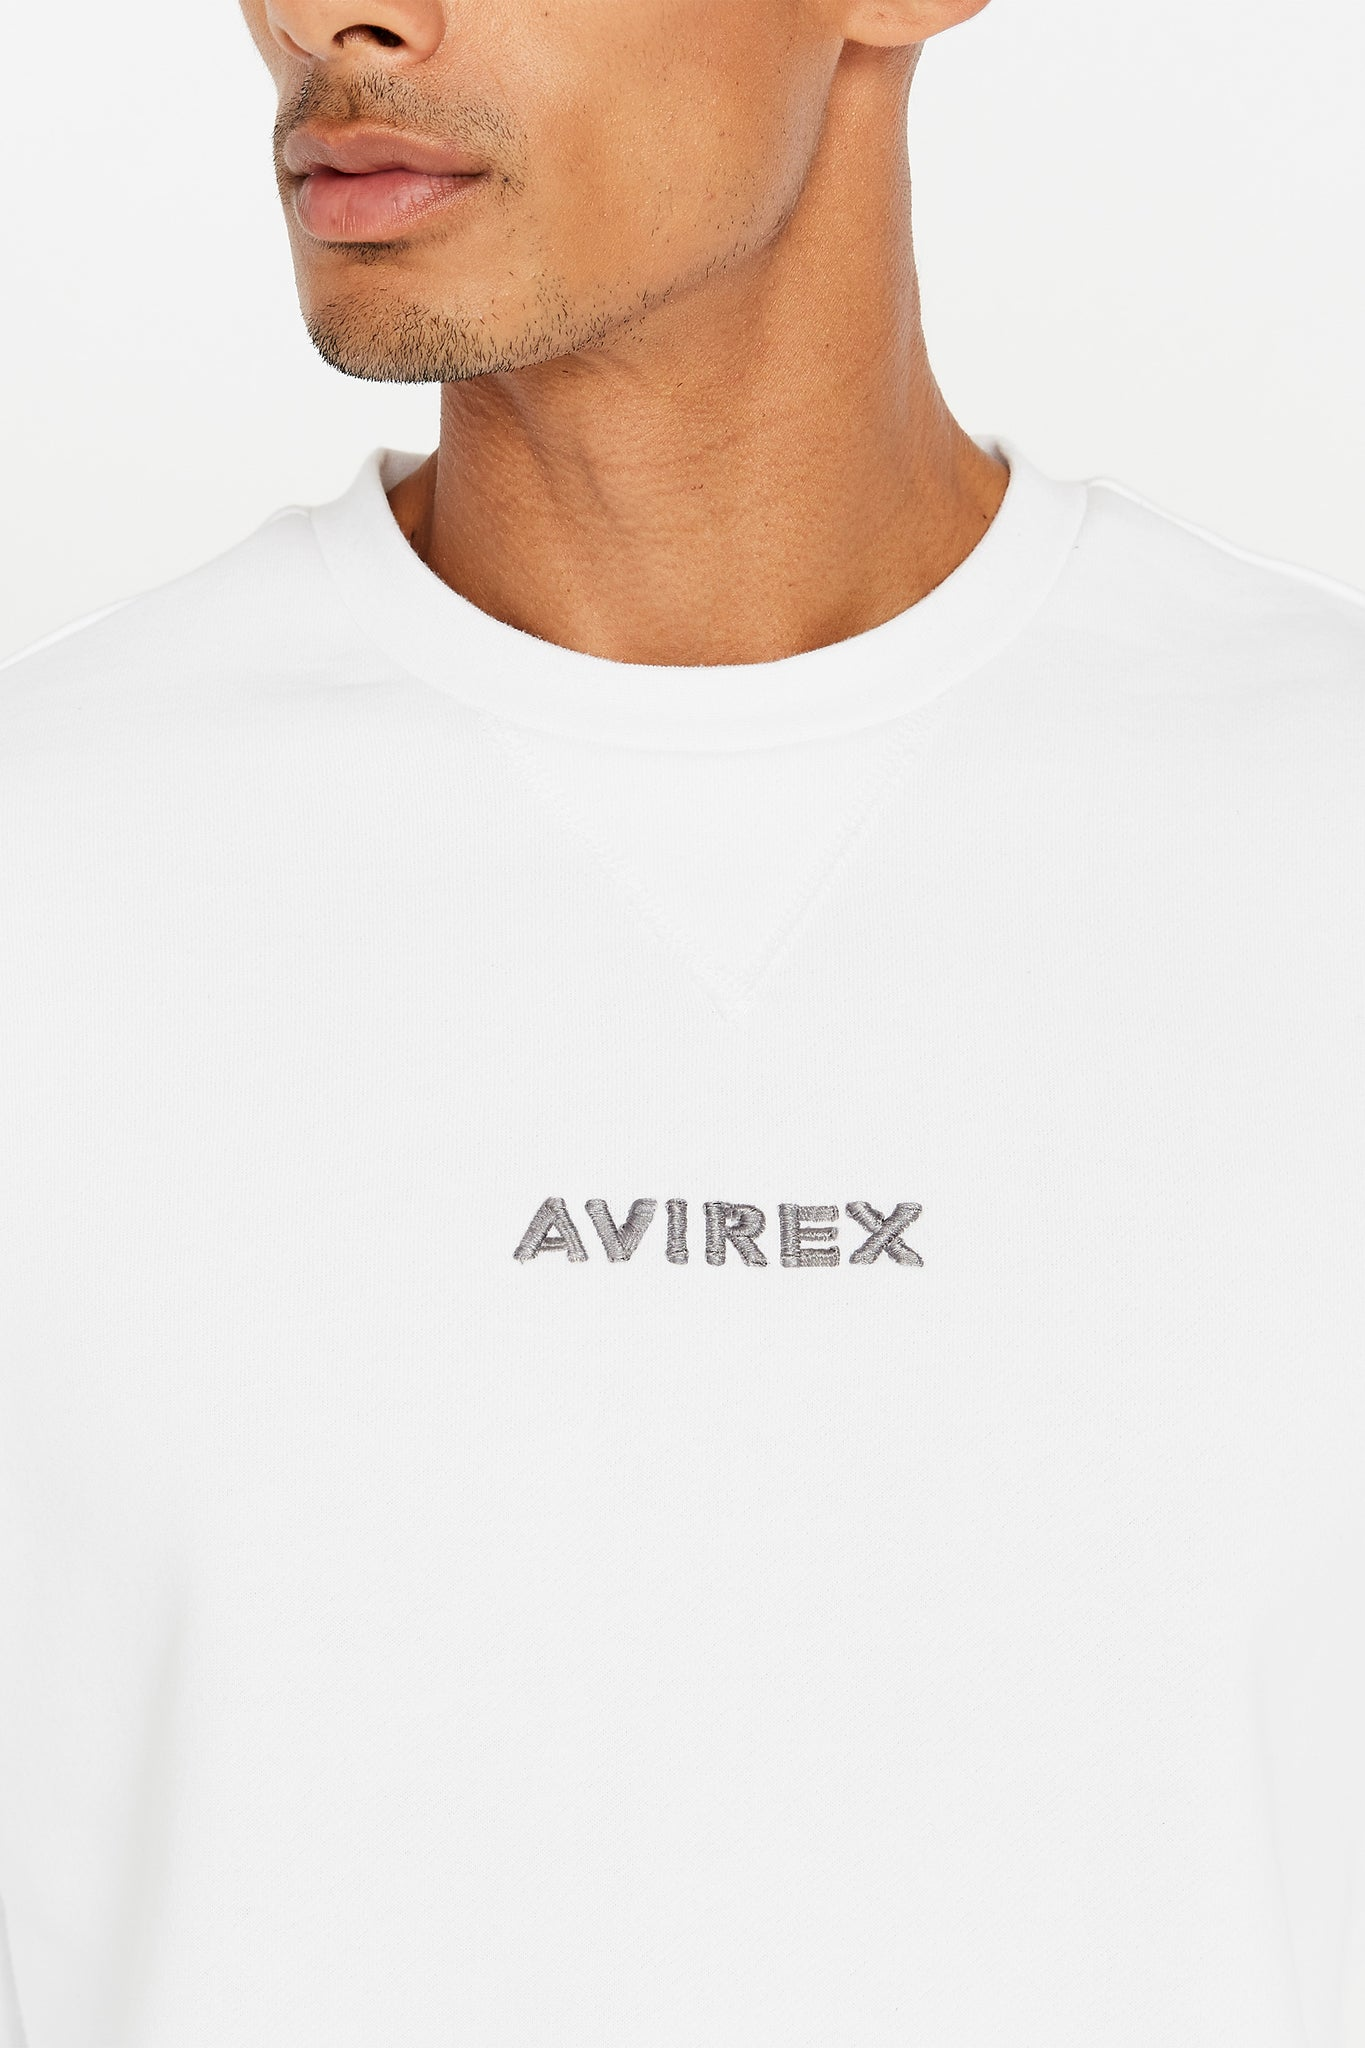 Detailed view of front light grey embroidered logo saying Avirex